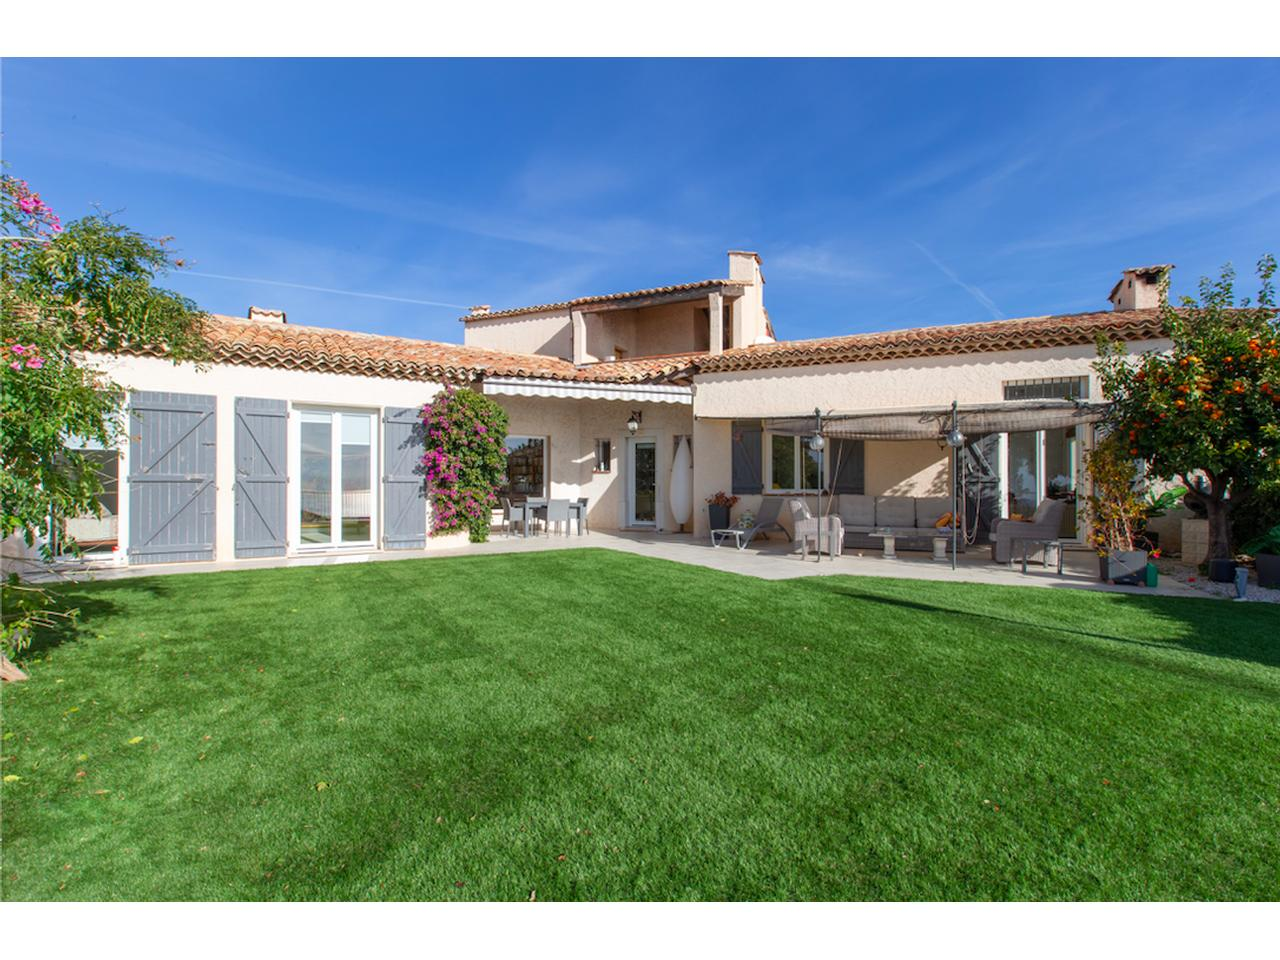 Vente House Listing Of Nice Properties For Sale With Sea View On The ...